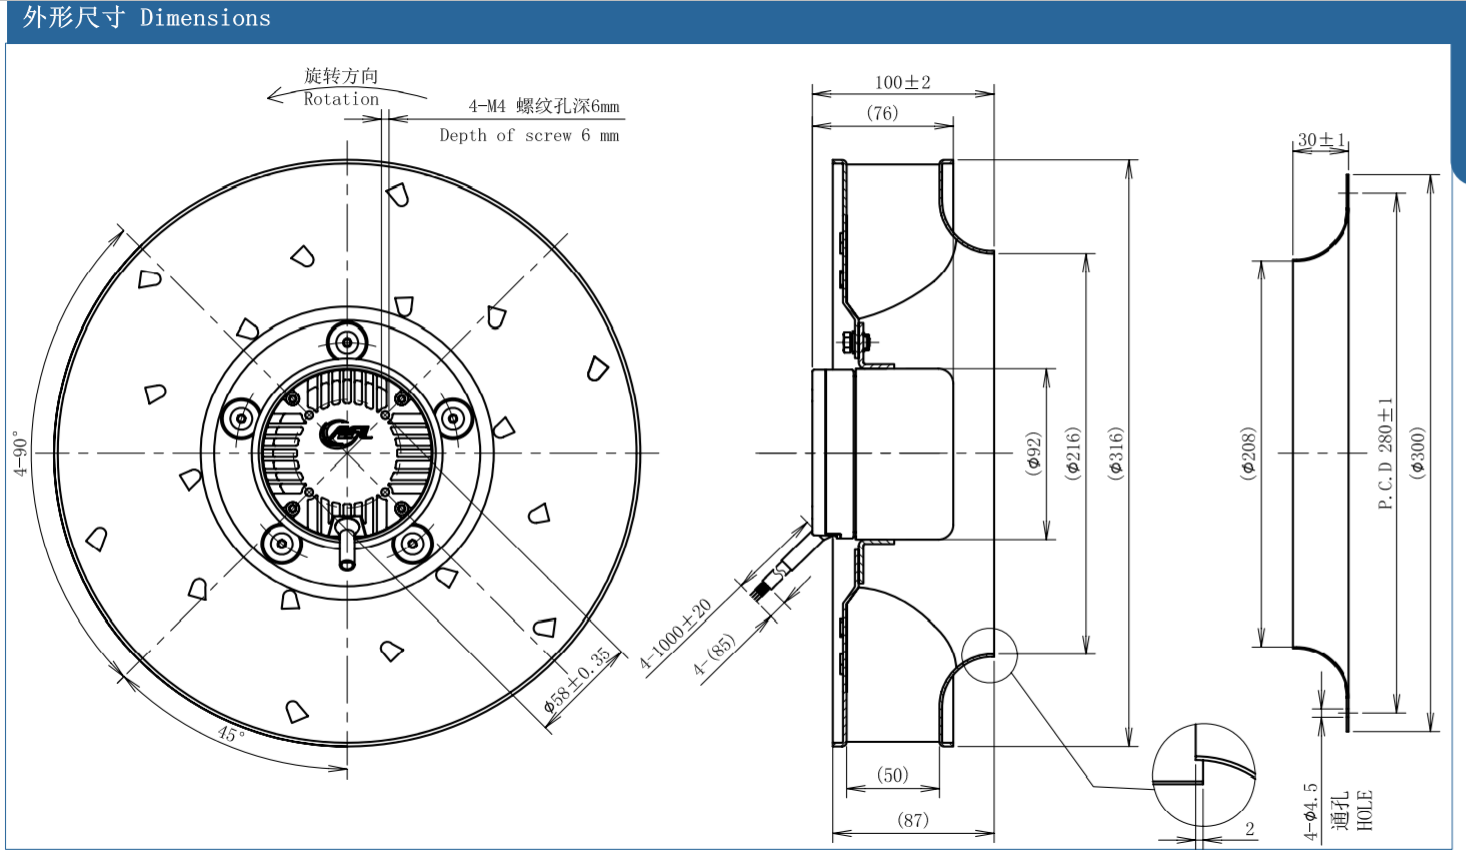 Haining Aifuluo Electric Co., Ltd. mainly produces: ec fan, Centrifugal fan, radial fan, blower fan, EC motor, external rotor motor, DC fan, DC motor, DC brushless motor, axial fan and other products.